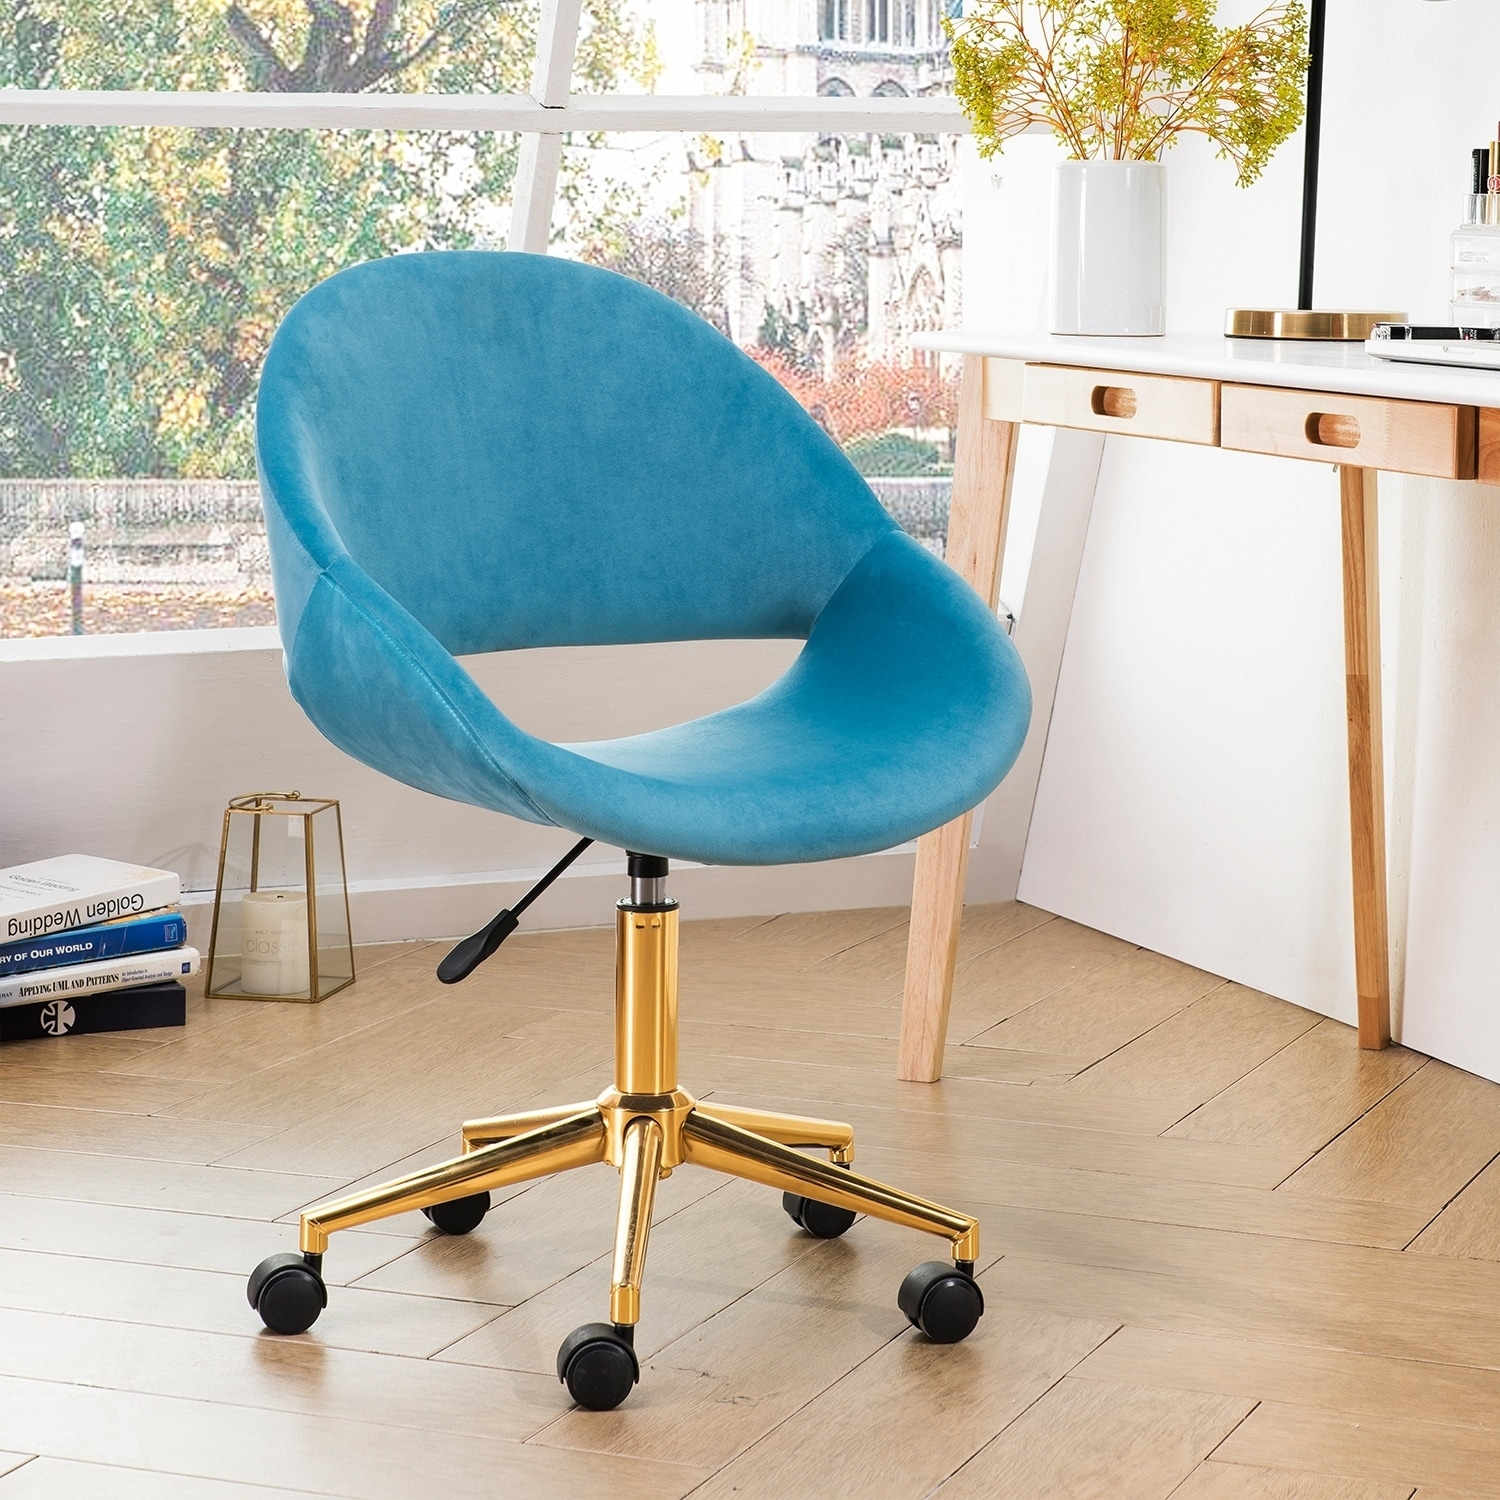 Ovios Cute Desk Chair Plush Velvet Office Chair For Home Or Office Modern Comfortble Nice Task Chair For Computer Desk